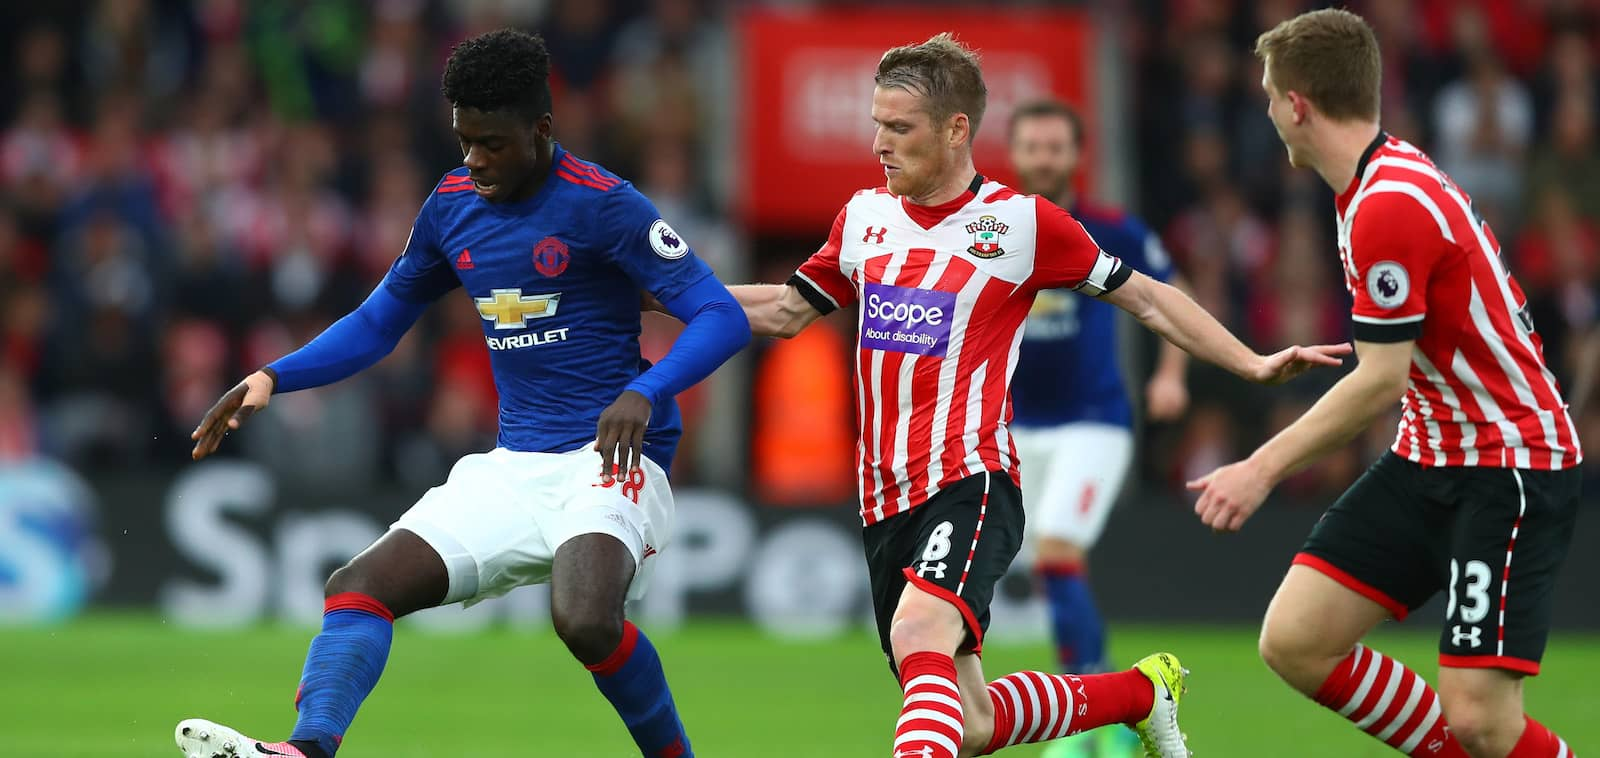 Manchester United fans pleased with Axel Tuanzebe's performance against Southampton